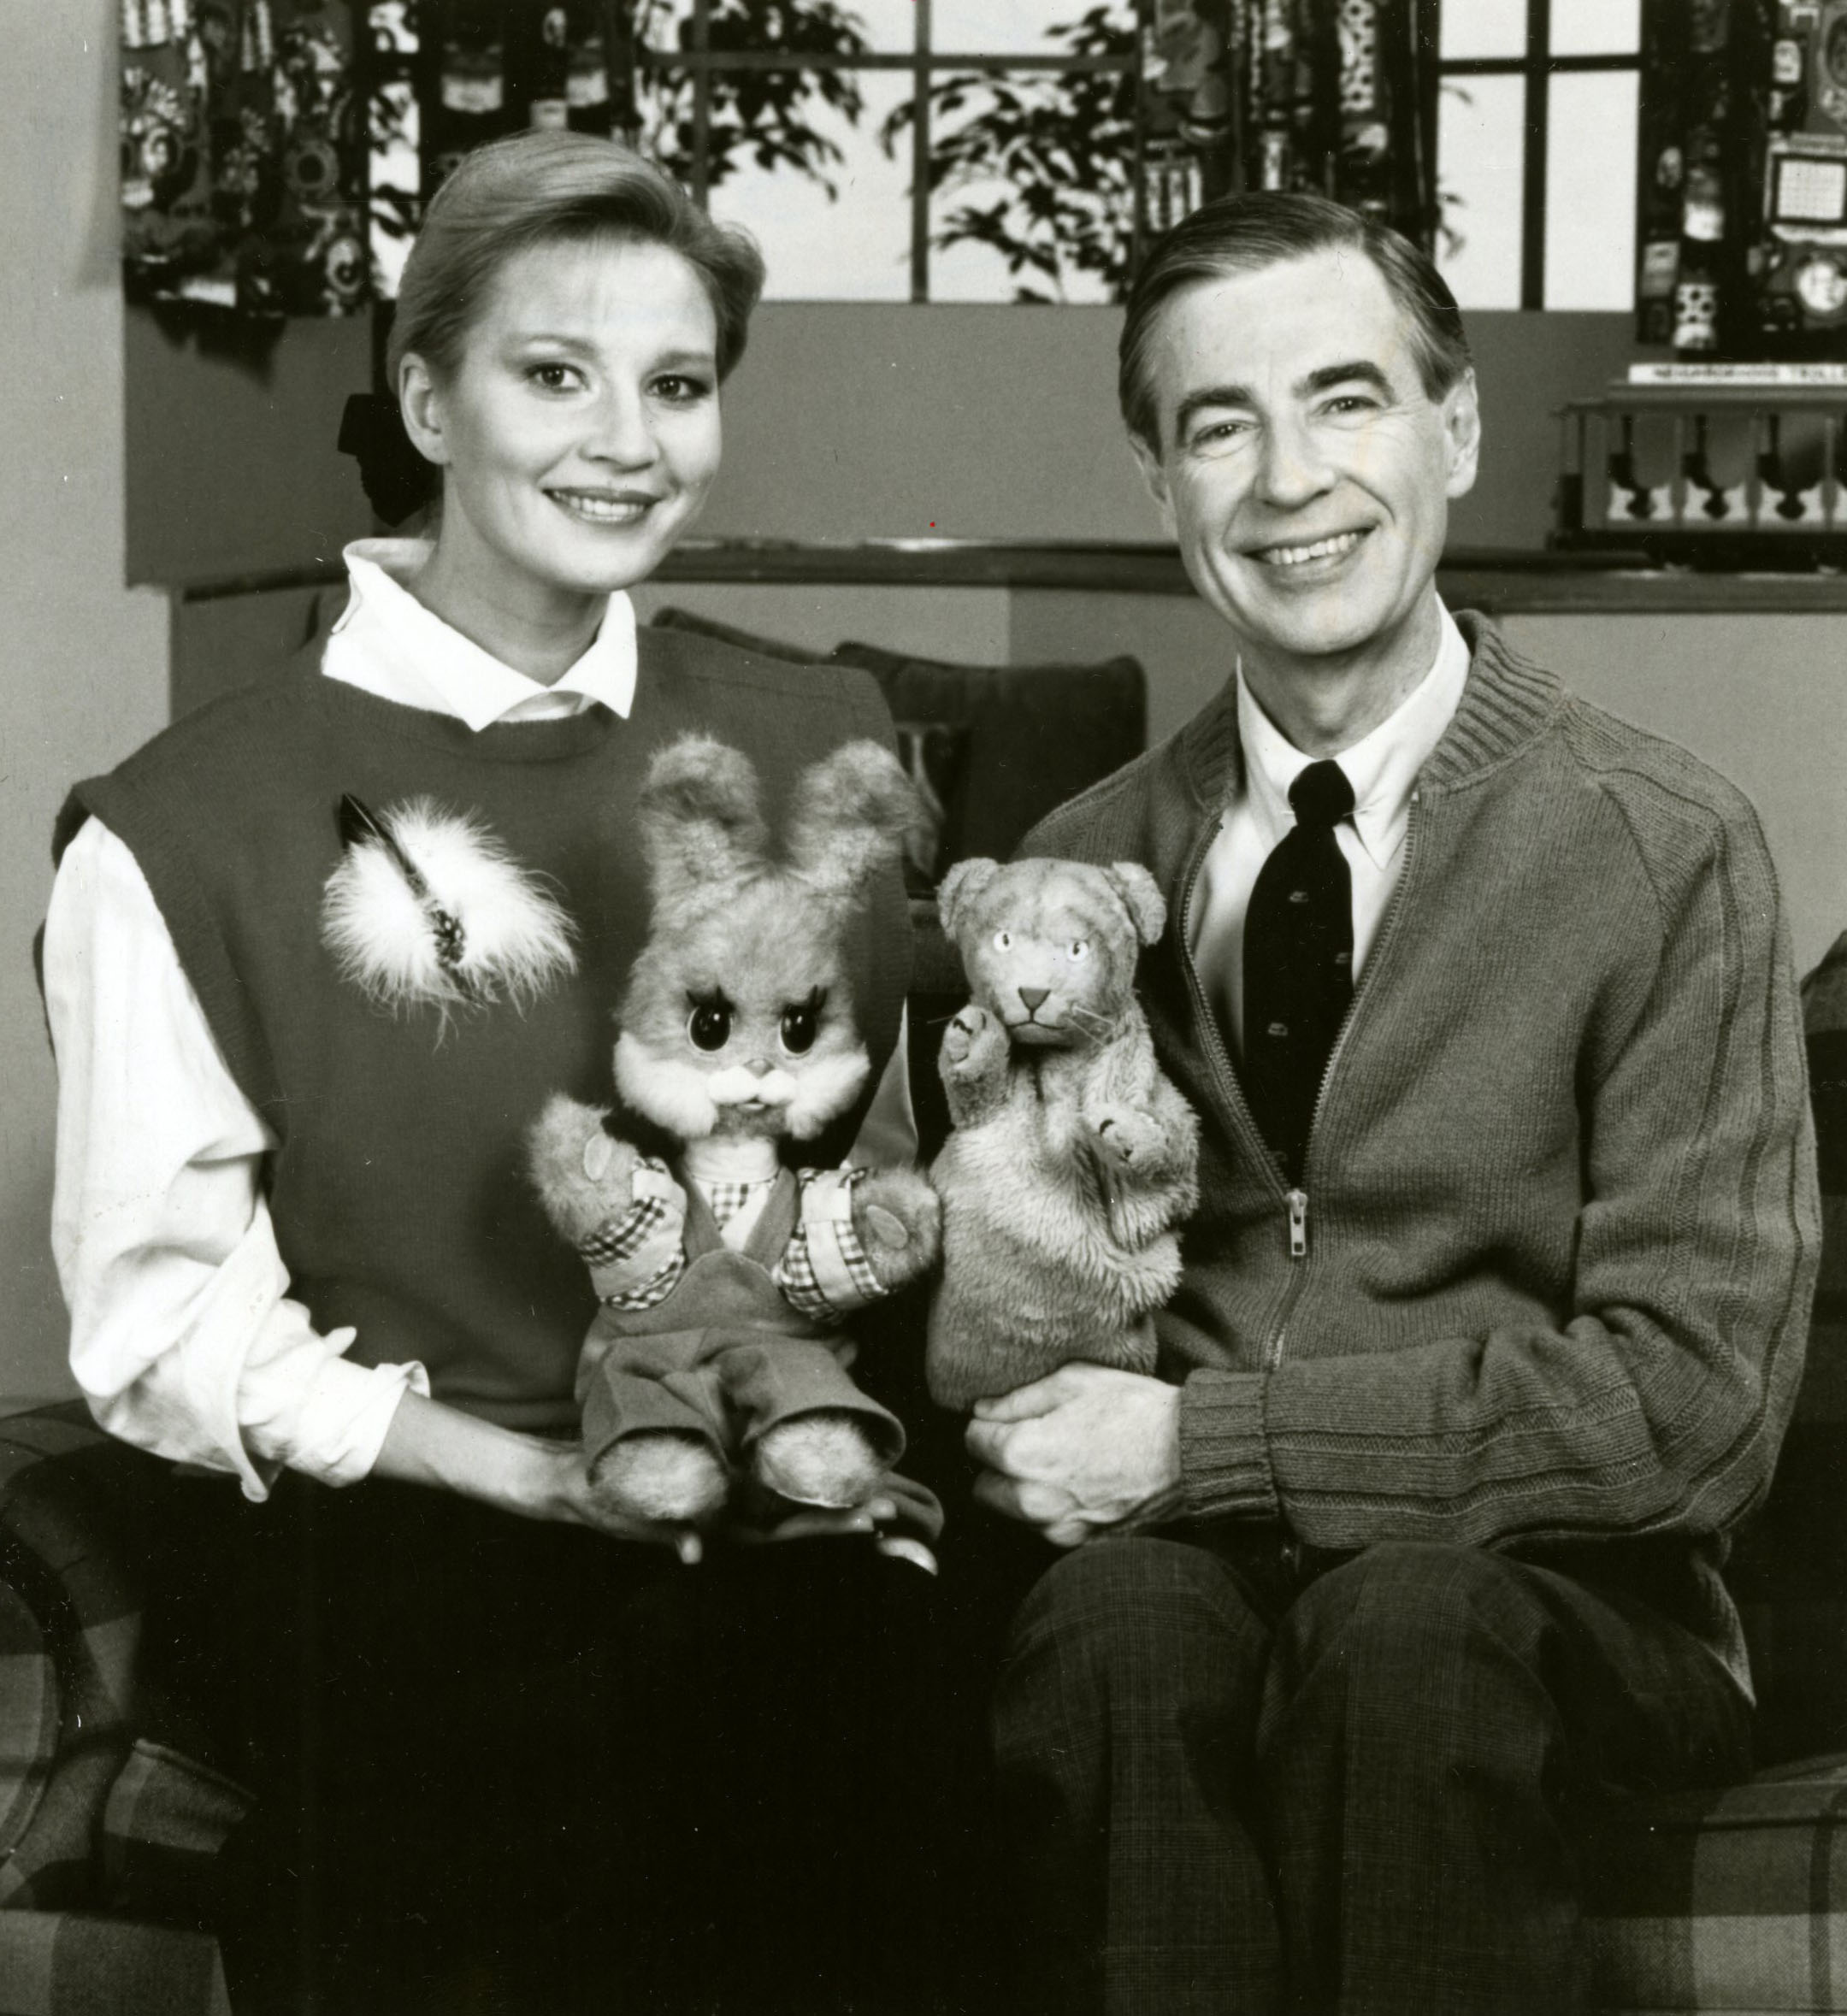 File Fred Rogers And Tatiana Vedeneyeva On Set Of Mister Rogers Neighborhood Jpg Wikimedia Commons